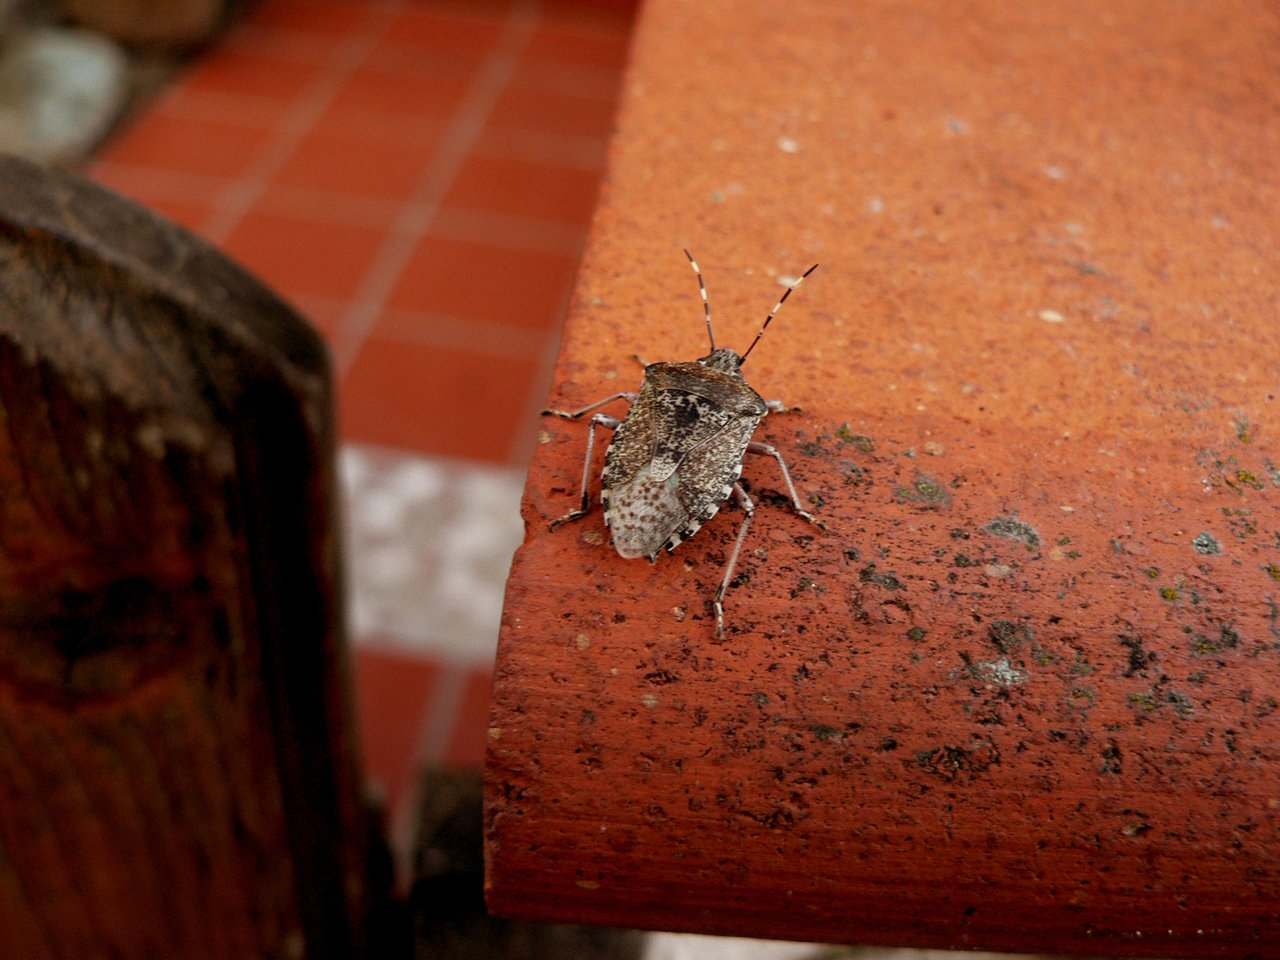 Cluster Flies, Conifer Beetles (Stink Bugs) And Lady Bugs